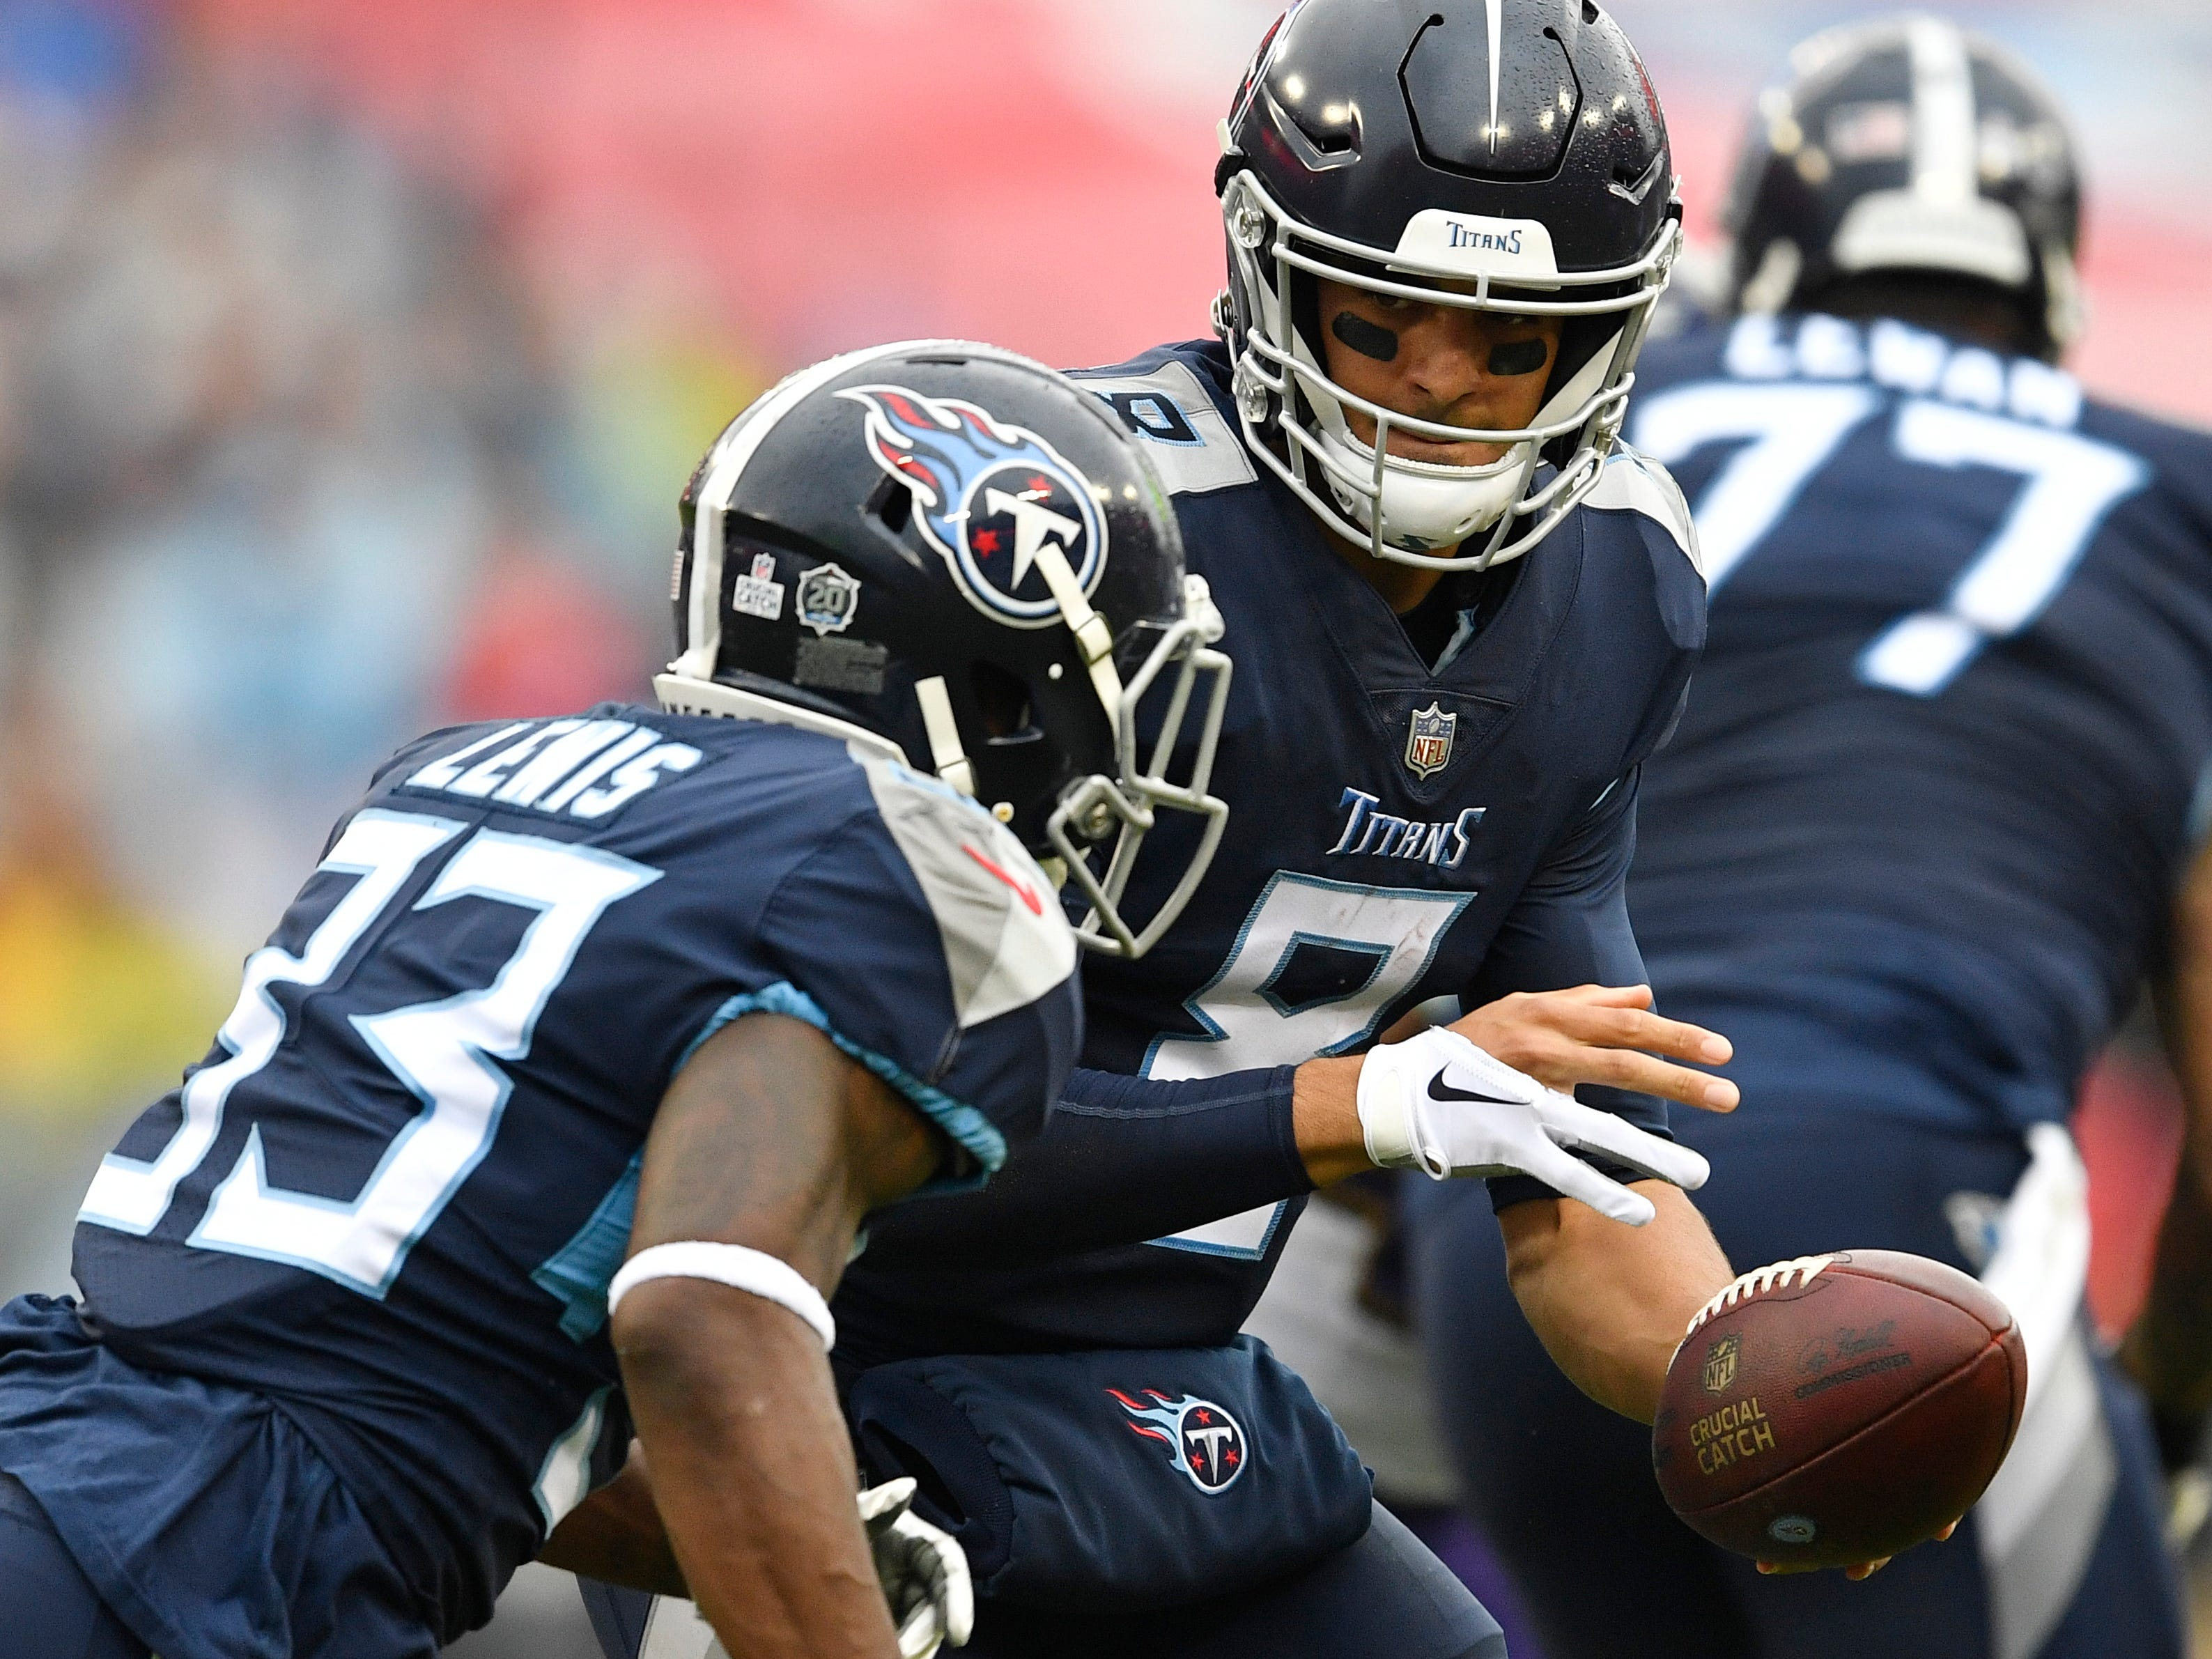 Titans quarterback Marcus Mariota (8) hands off to Titans running back Dion Lewis (33) in the first half at Nissan Stadium Sunday, Oct. 14, 2018, in Nashville, Tenn.